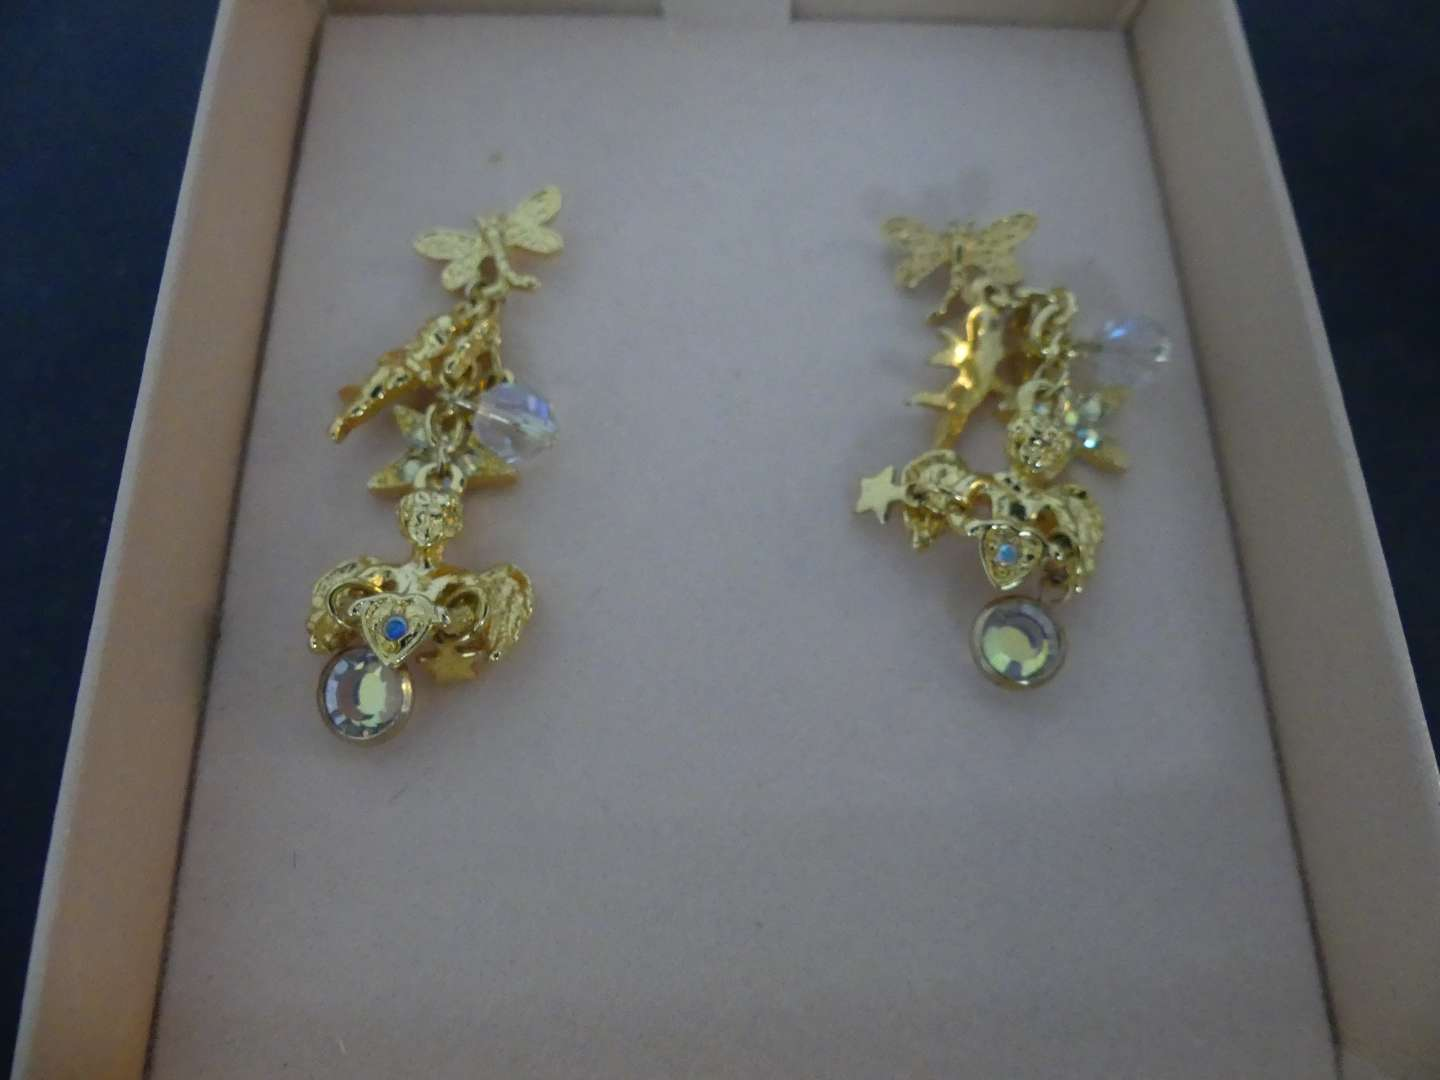 Lot #127 Vintage Kirk's Folly Gold Tone Earrings - Dragonflies, Cupids, Cherubs and Stars - AB Crystals